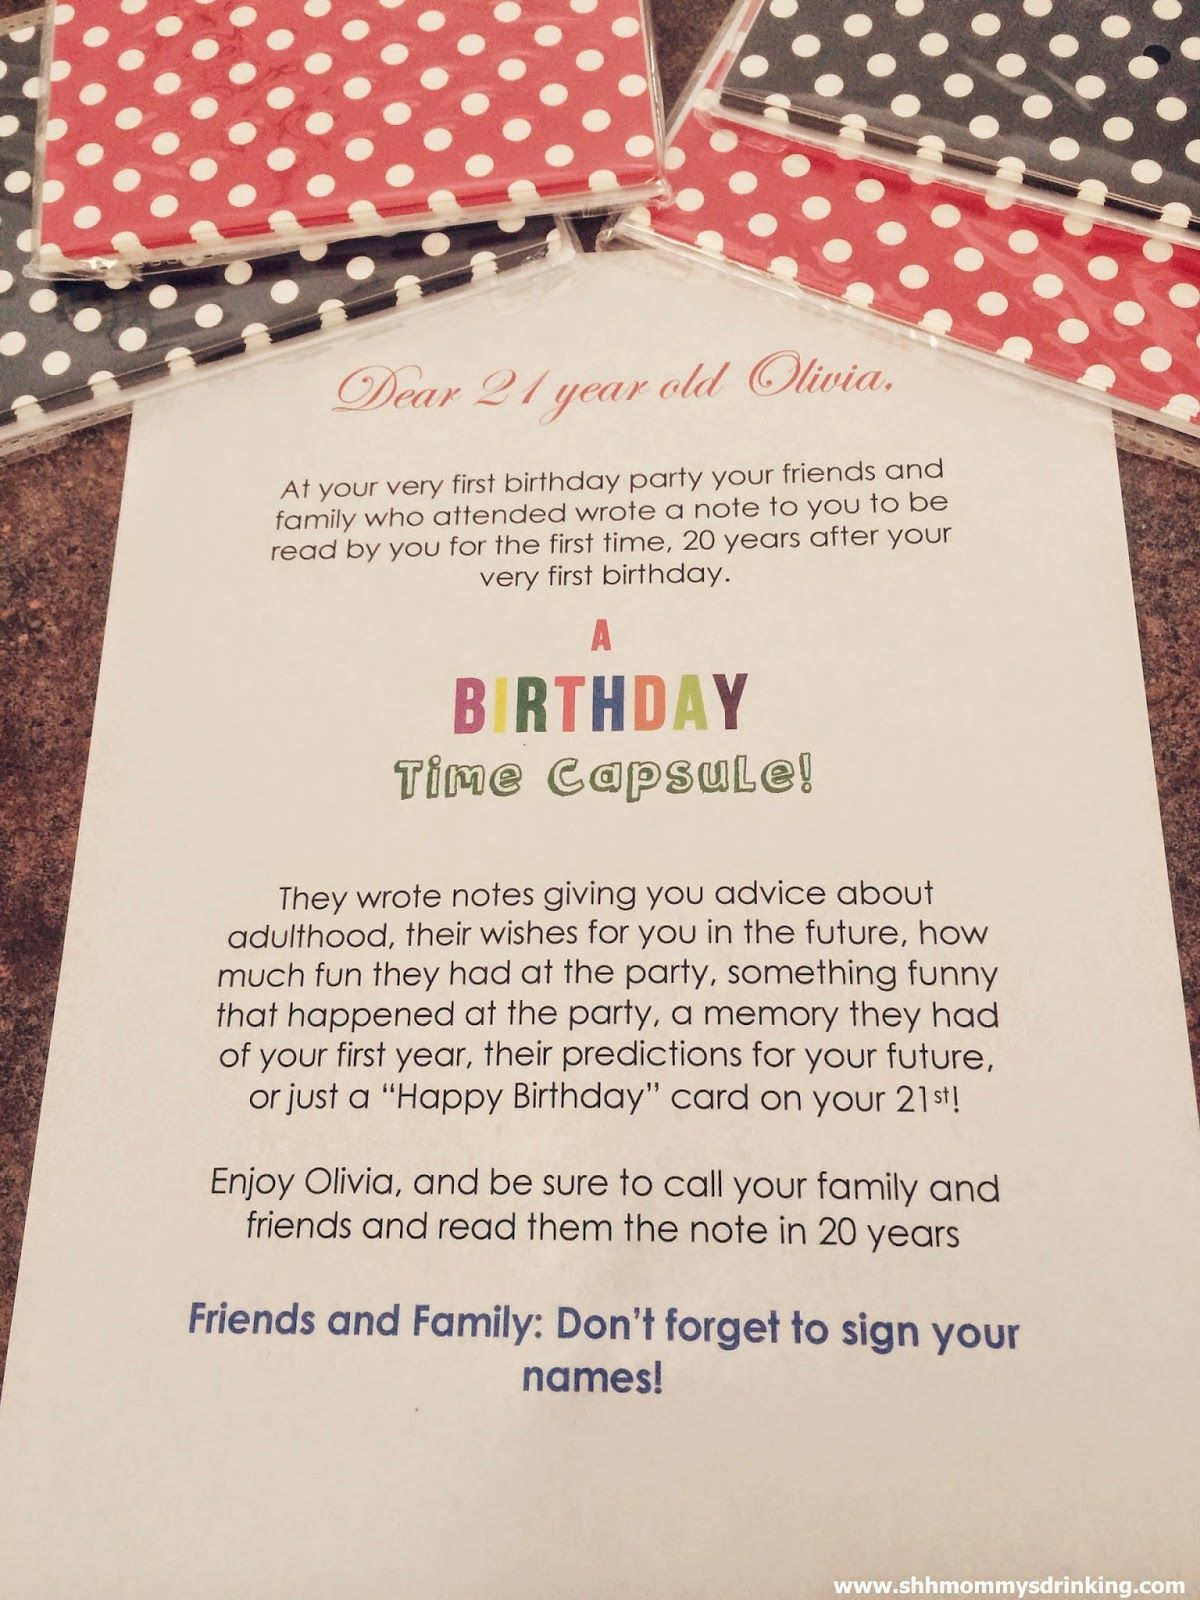 Birthday Time Capsule Note To The 1st Boy Or Girl From Guests At Party Be Opened In 20 Years Include Original Invitation Photos